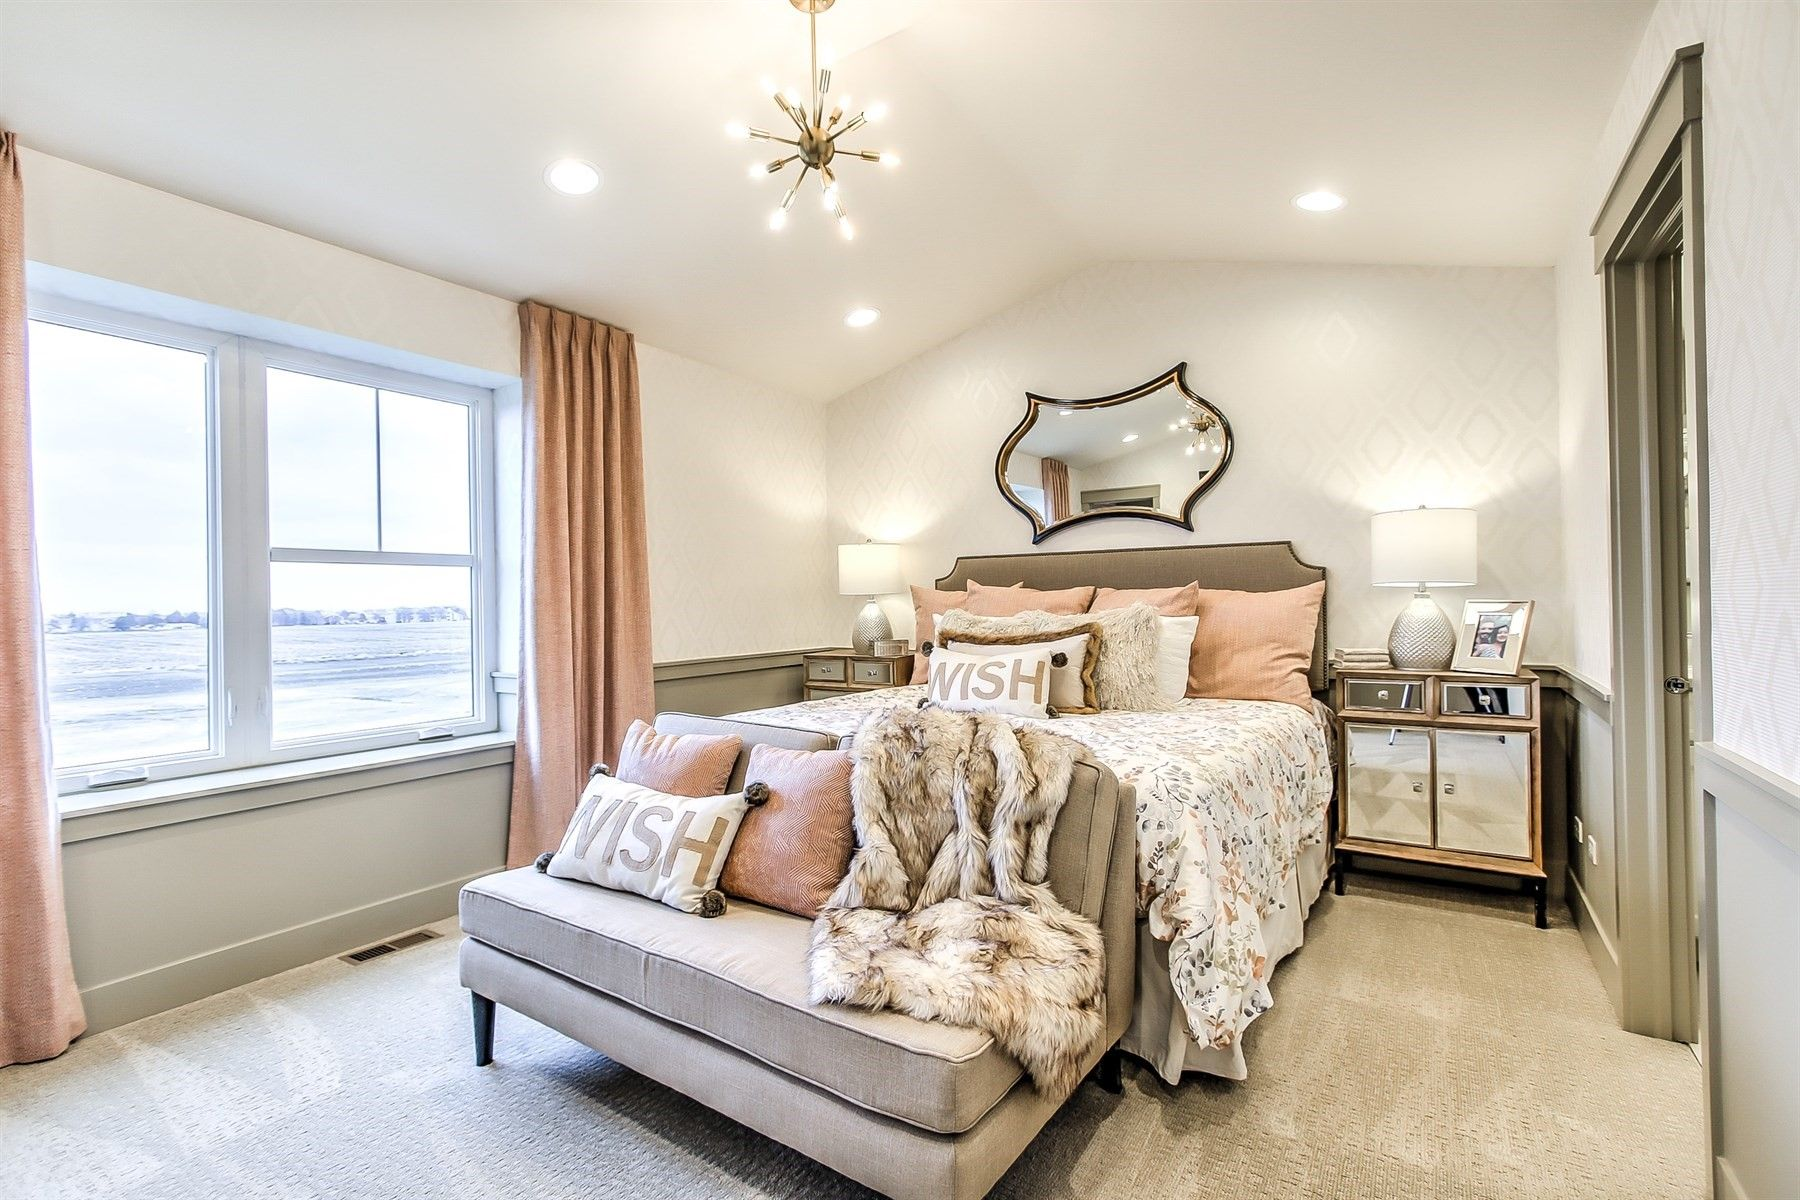 Bedroom featured in the Lasalle By M/I Homes in Chicago, IL